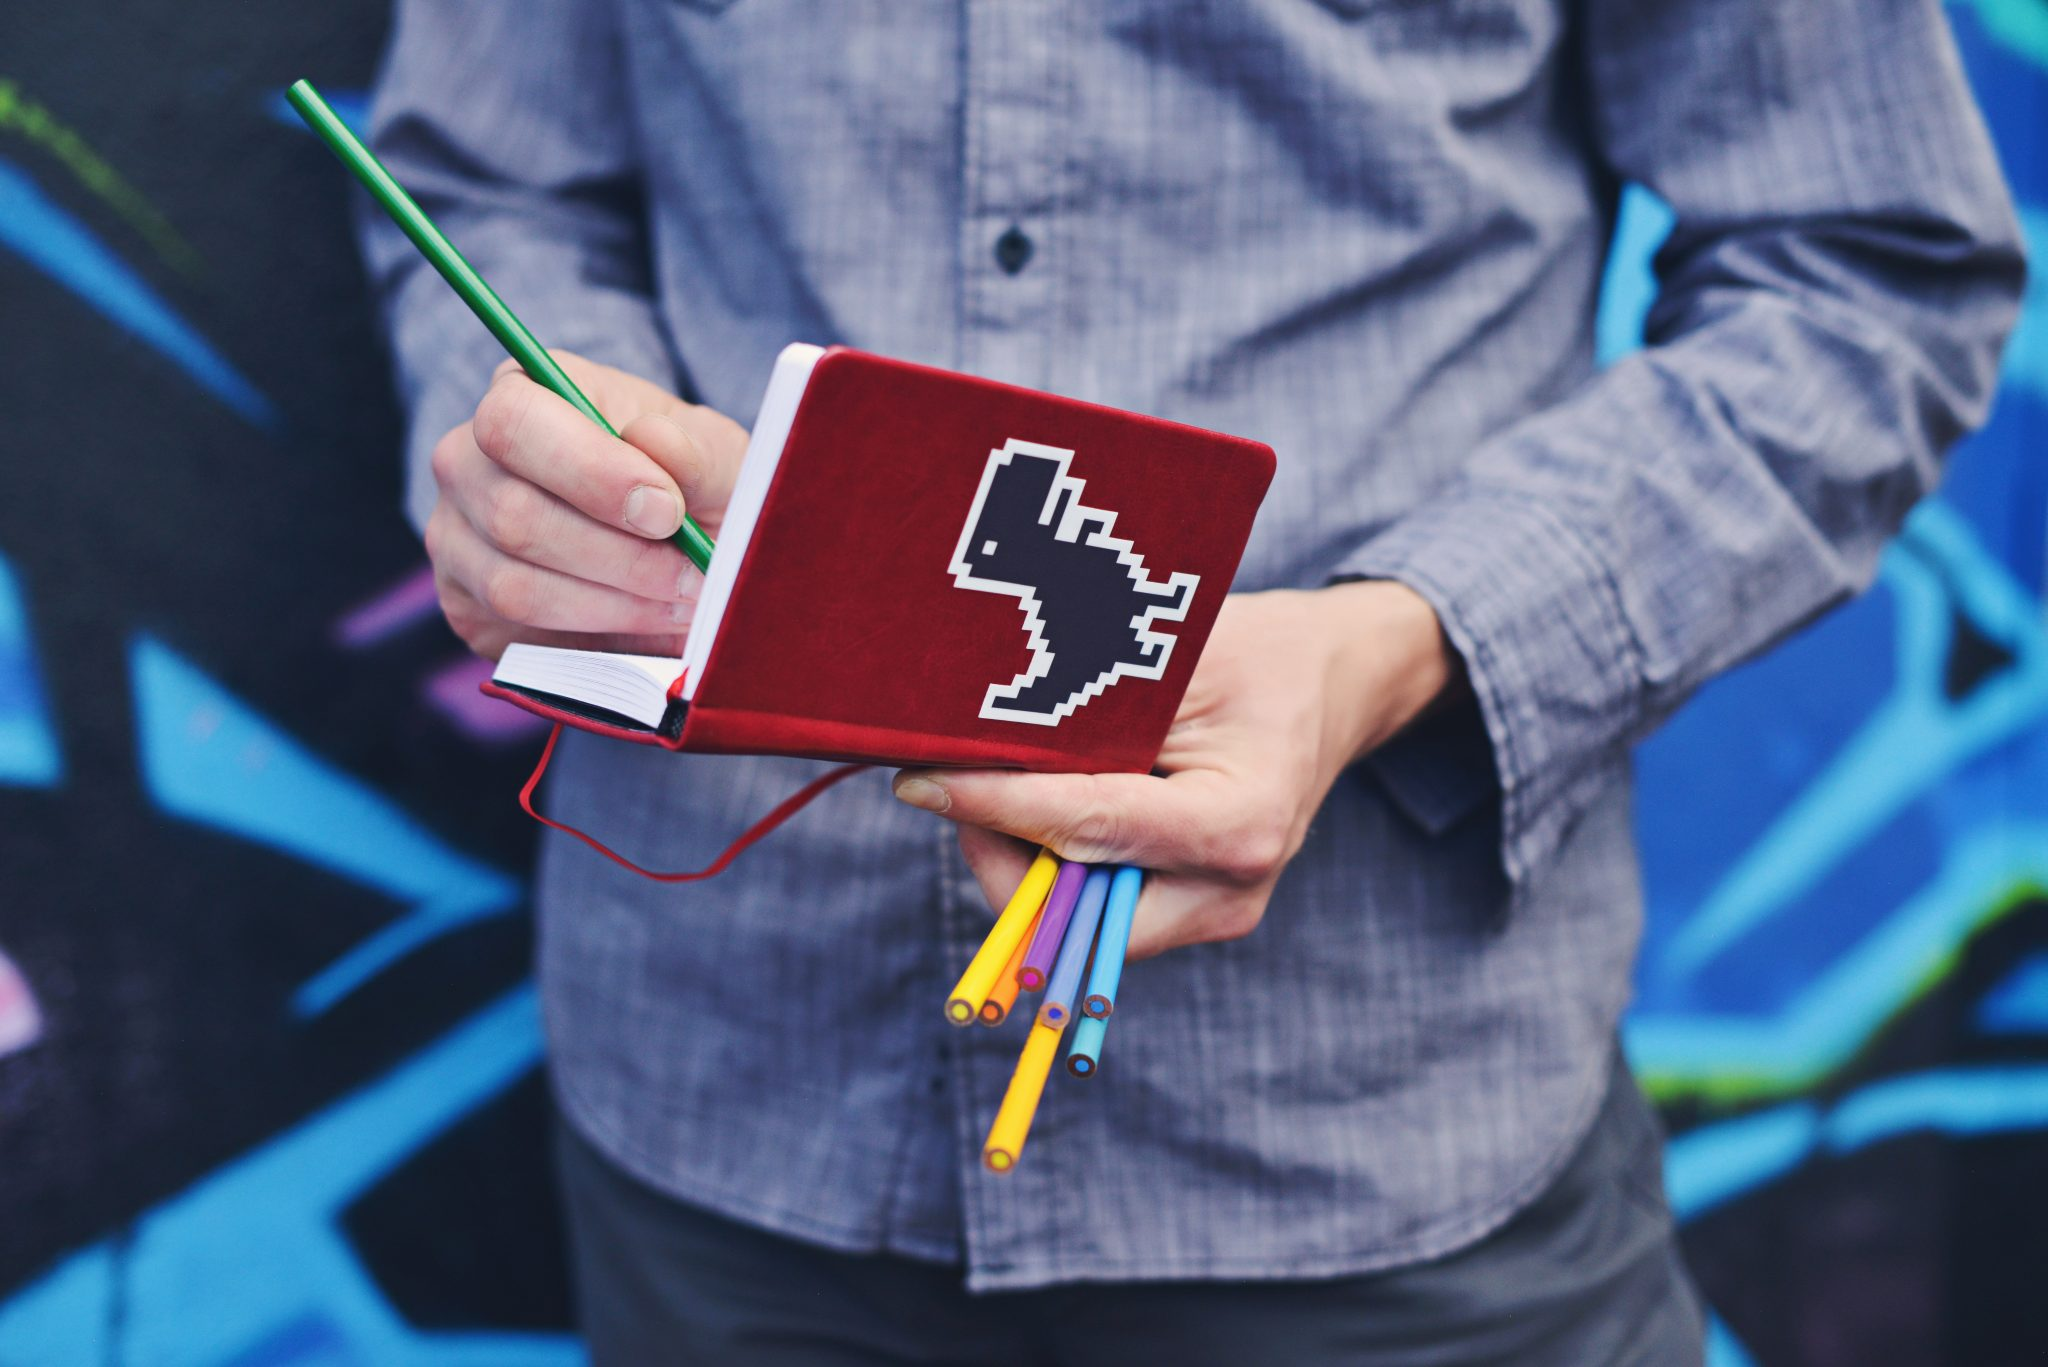 Man writing with a pencil in a red notebook with a dinosaur on it